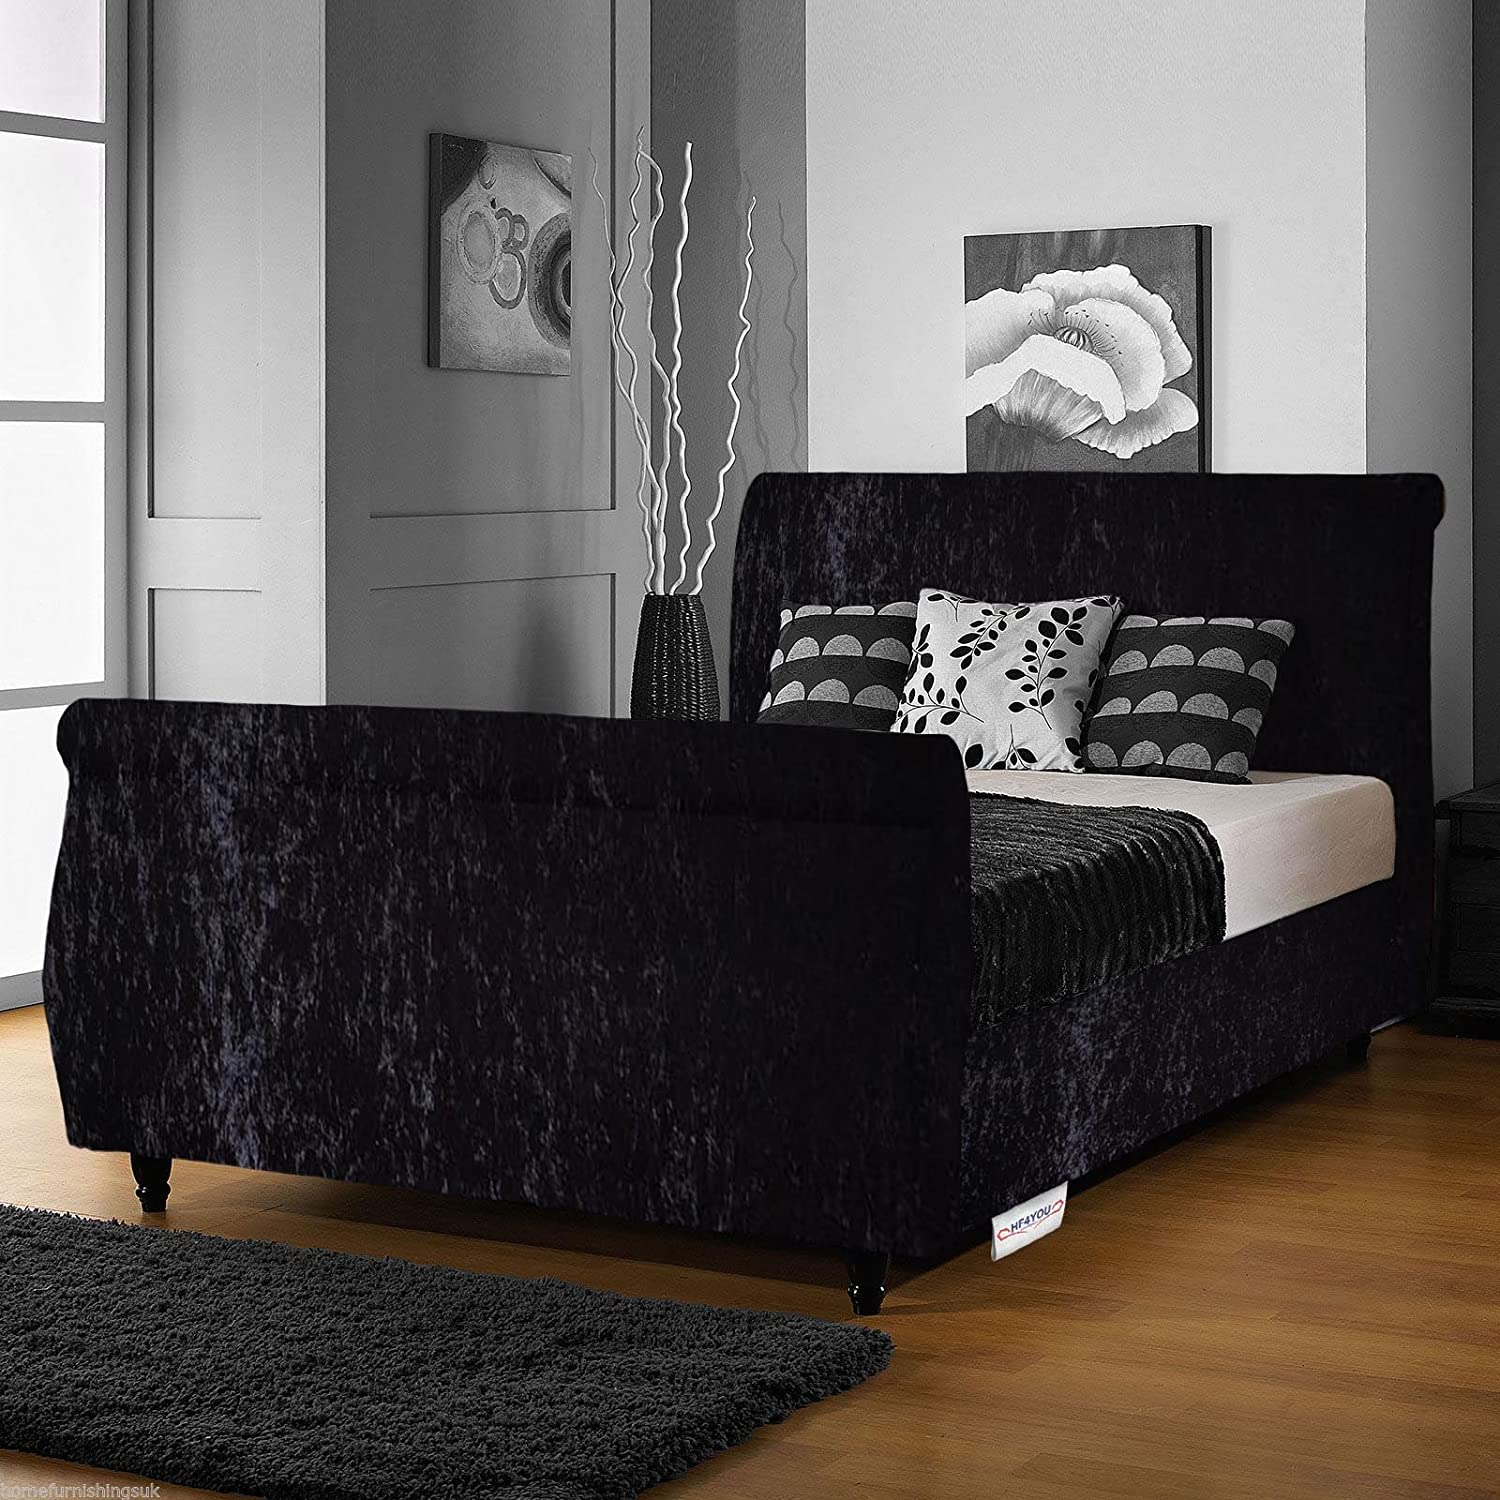 hf4you limcho crushed velvet sleigh bed frame 4ft6 double black orthopaedic sprung mattress amazoncouk kitchen u0026 home